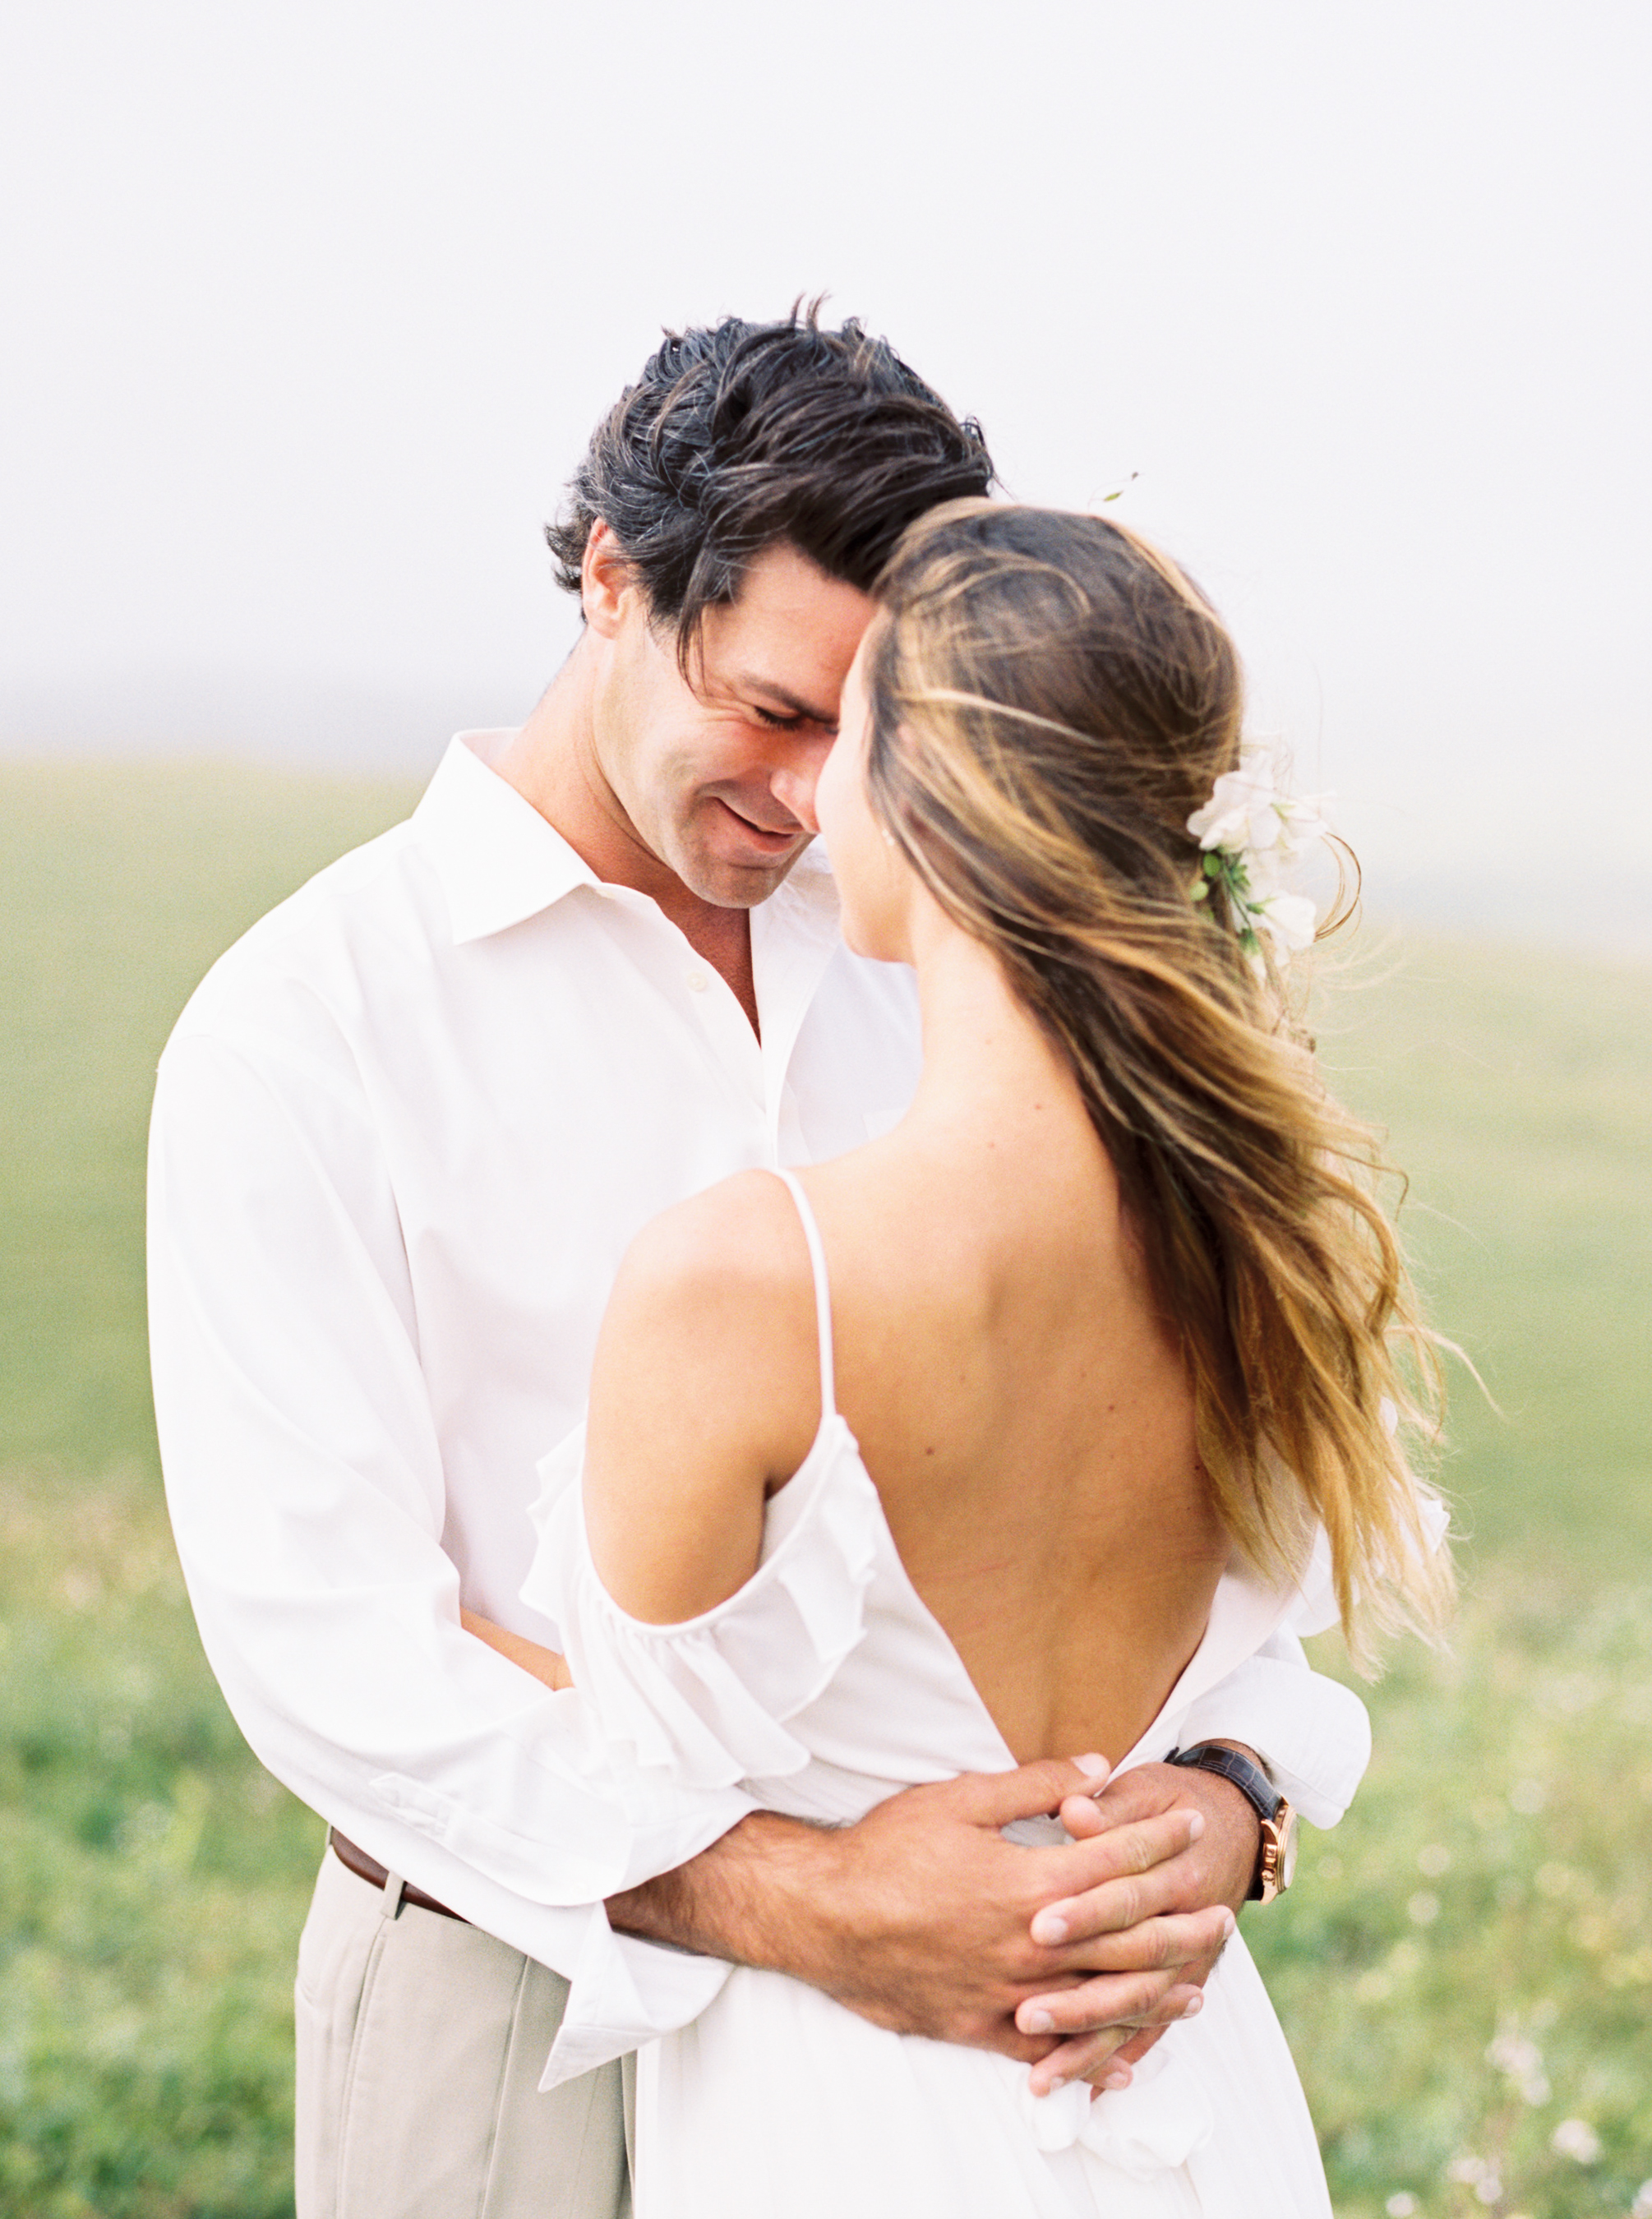 Danford-Photography-Bozeman-Montana-California-Wedding-Engagement-Photographer-9.jpg